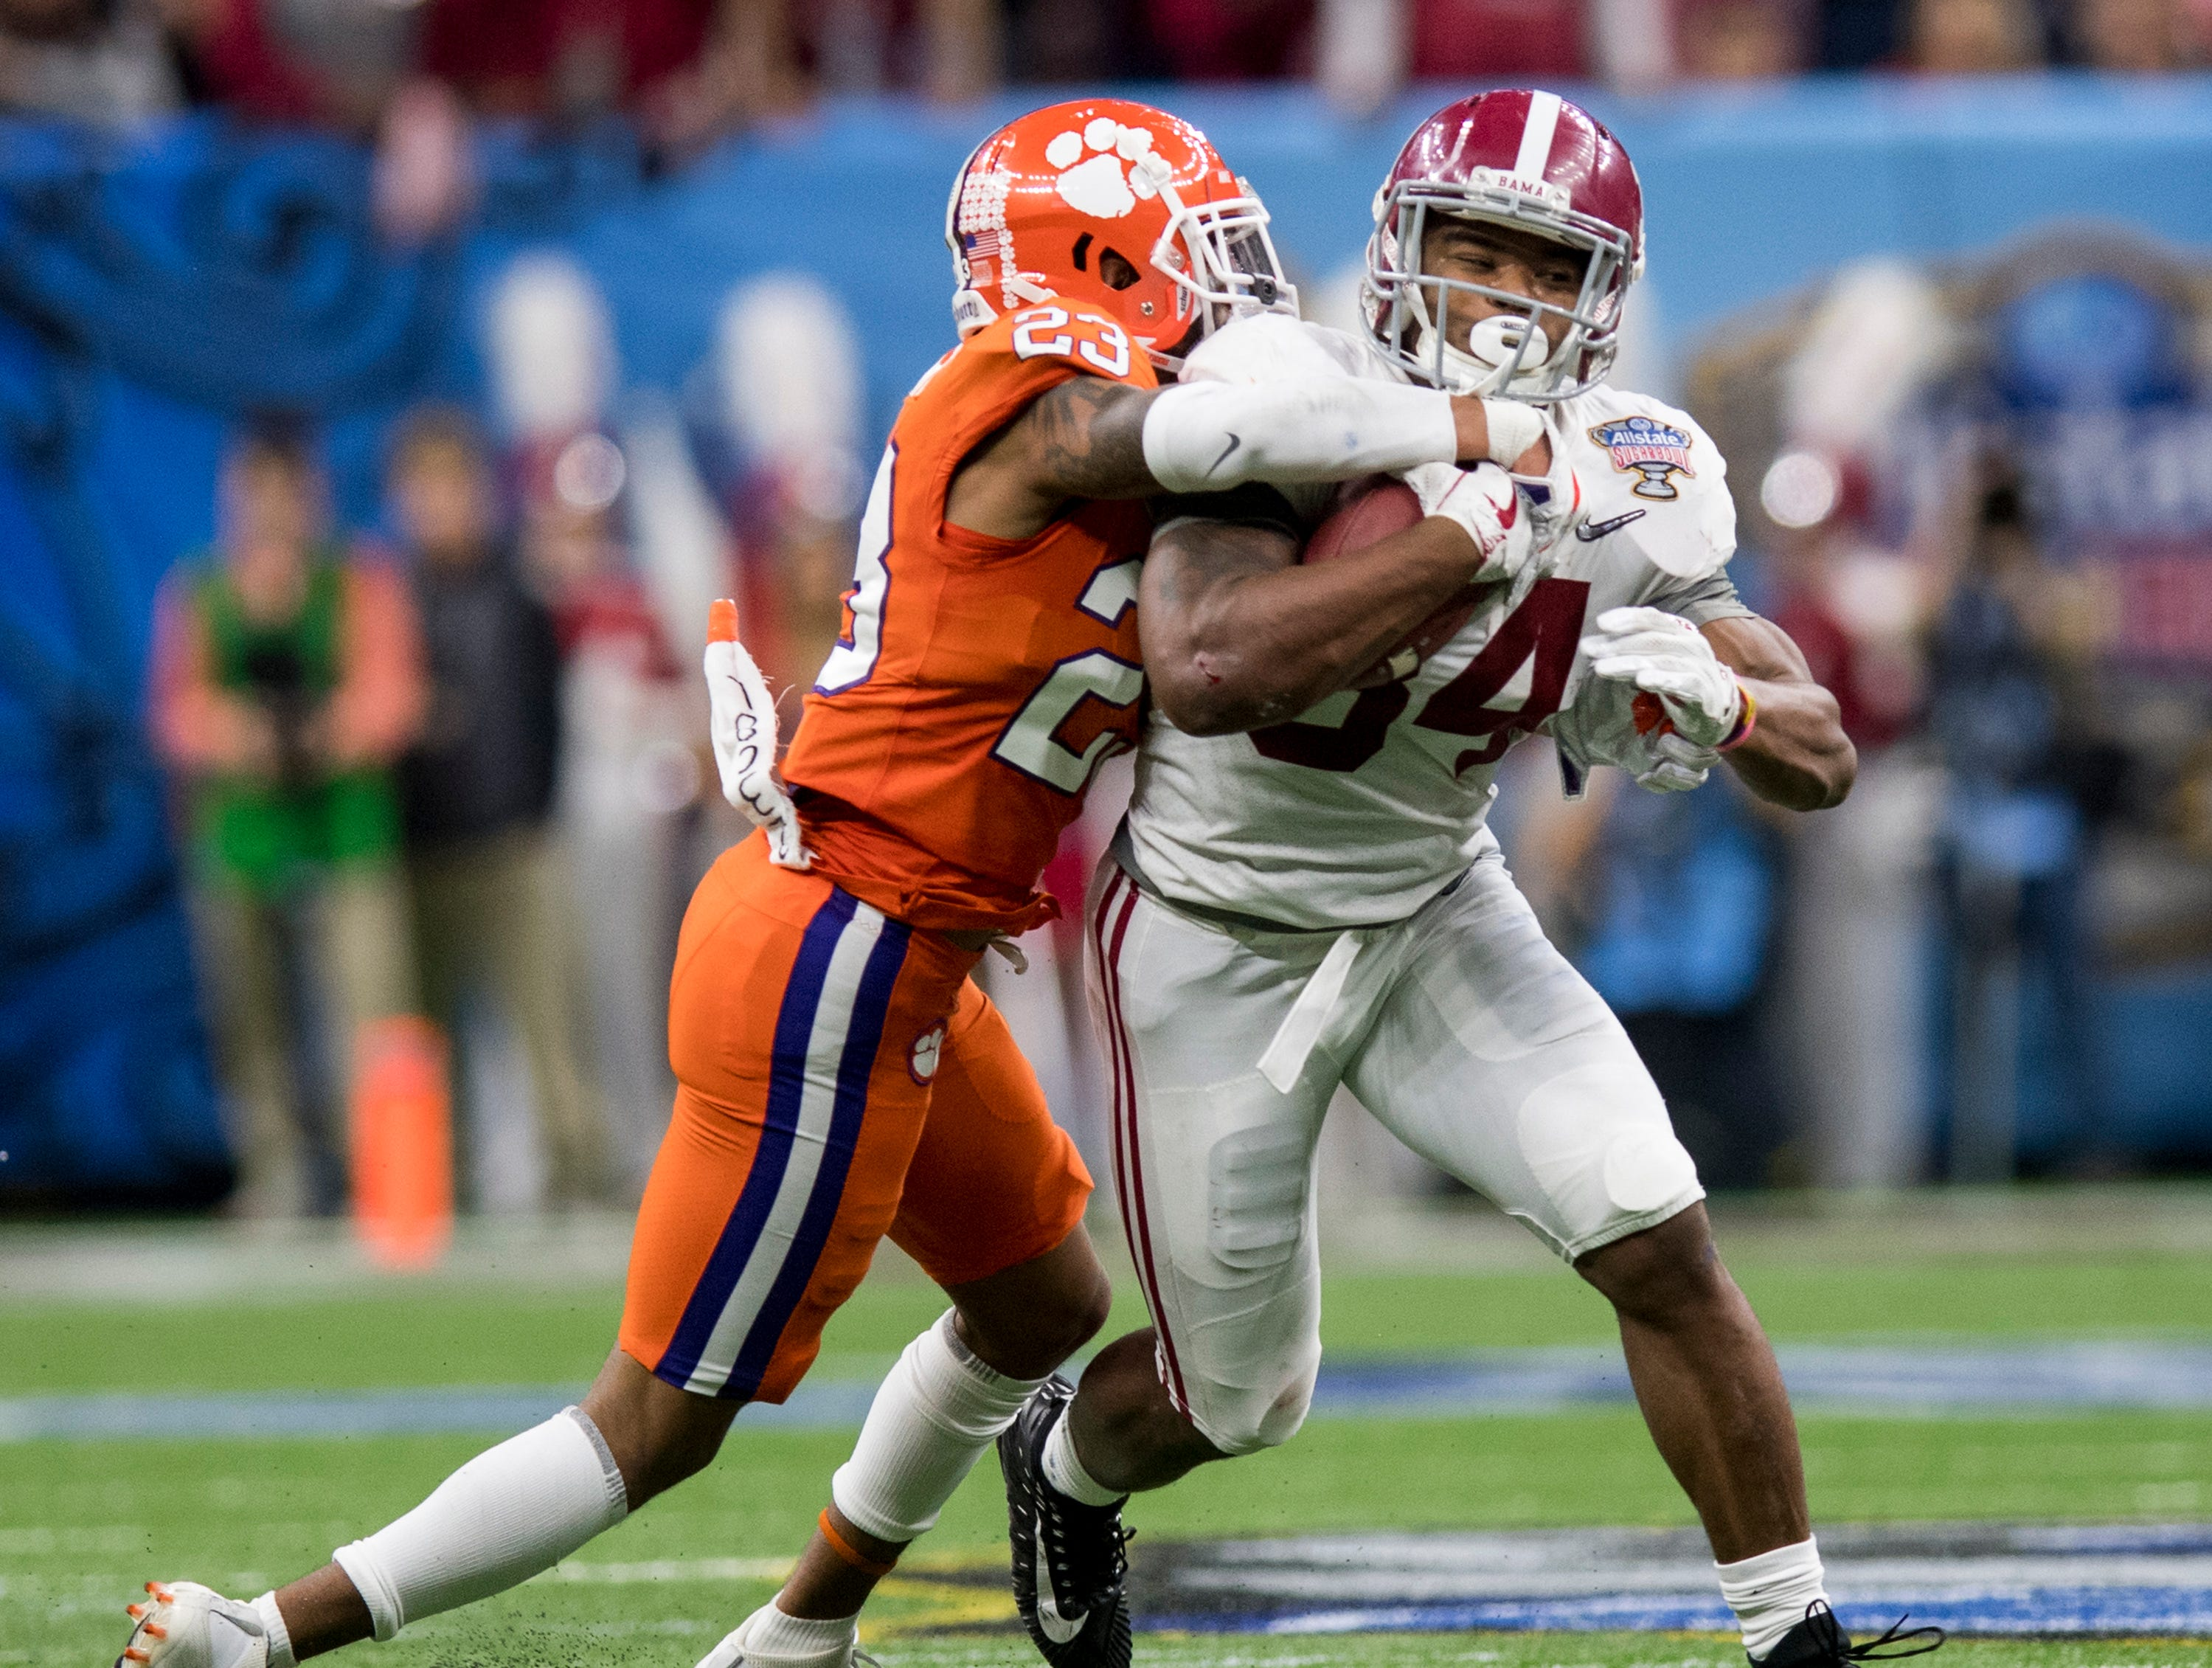 Clemson safety Van Smith (23) stops Alabama running back Damien Harris (34) in first half action in the Sugar Bowl at the Superdome in New Orleans, La. on Monday January 1, 2018.